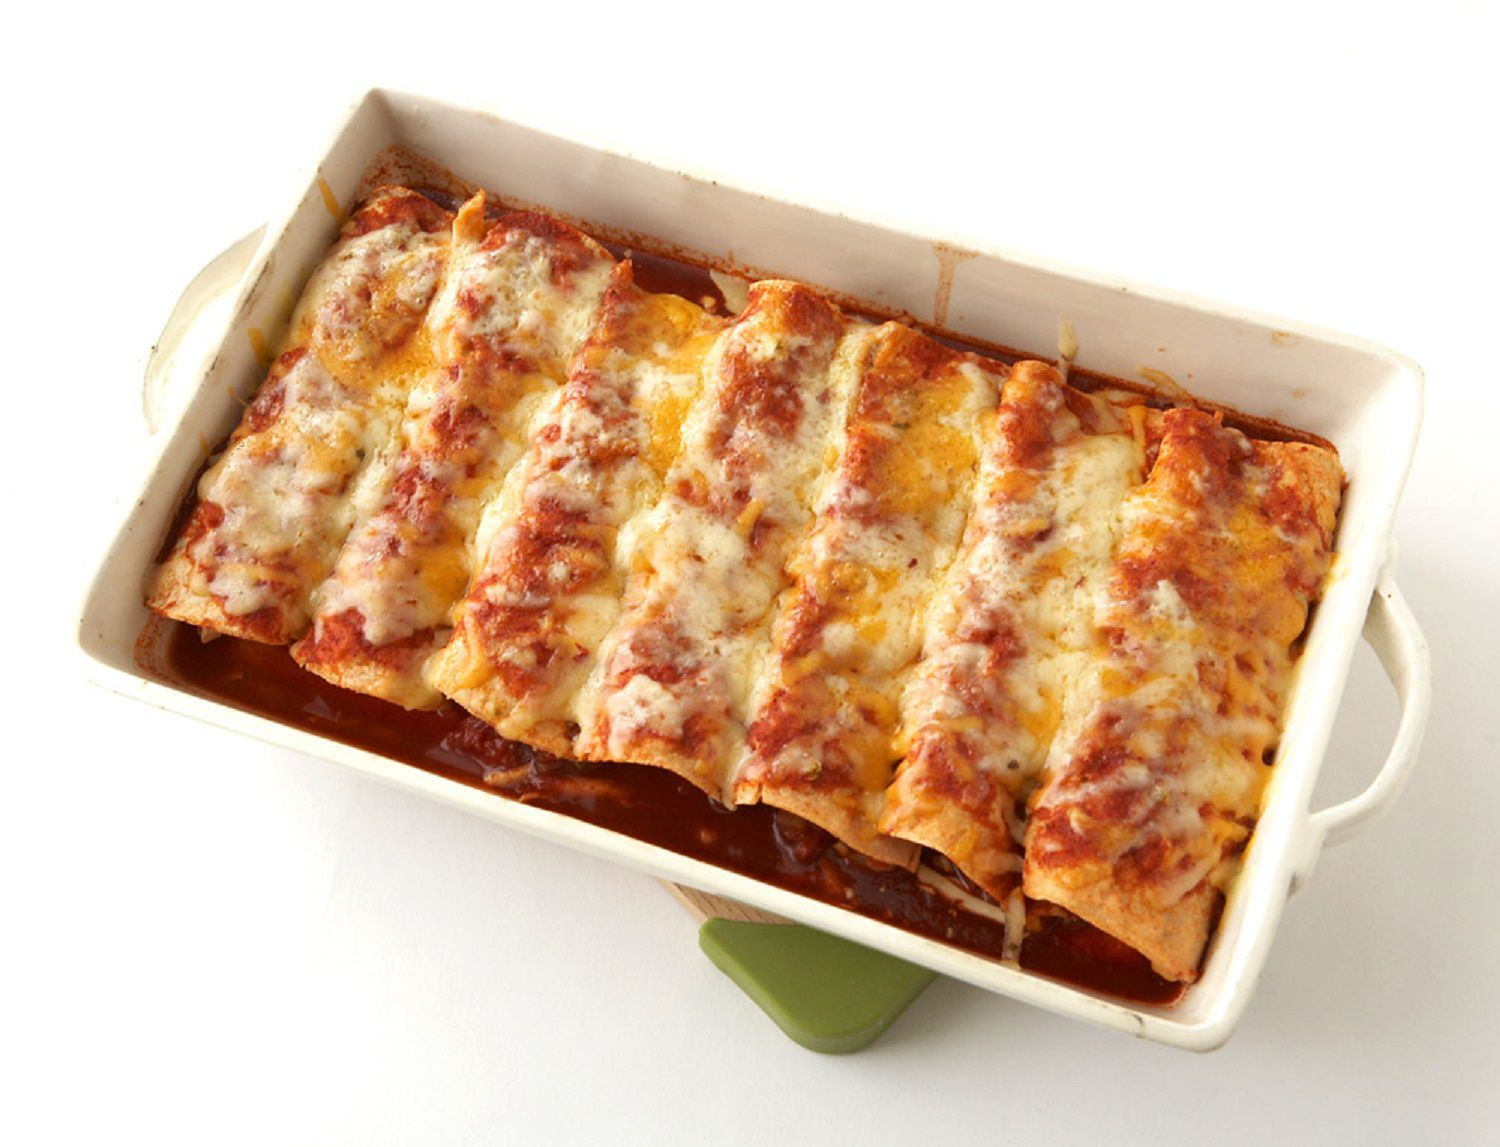 Tyler Florence's Chicken Enchilada Recipe